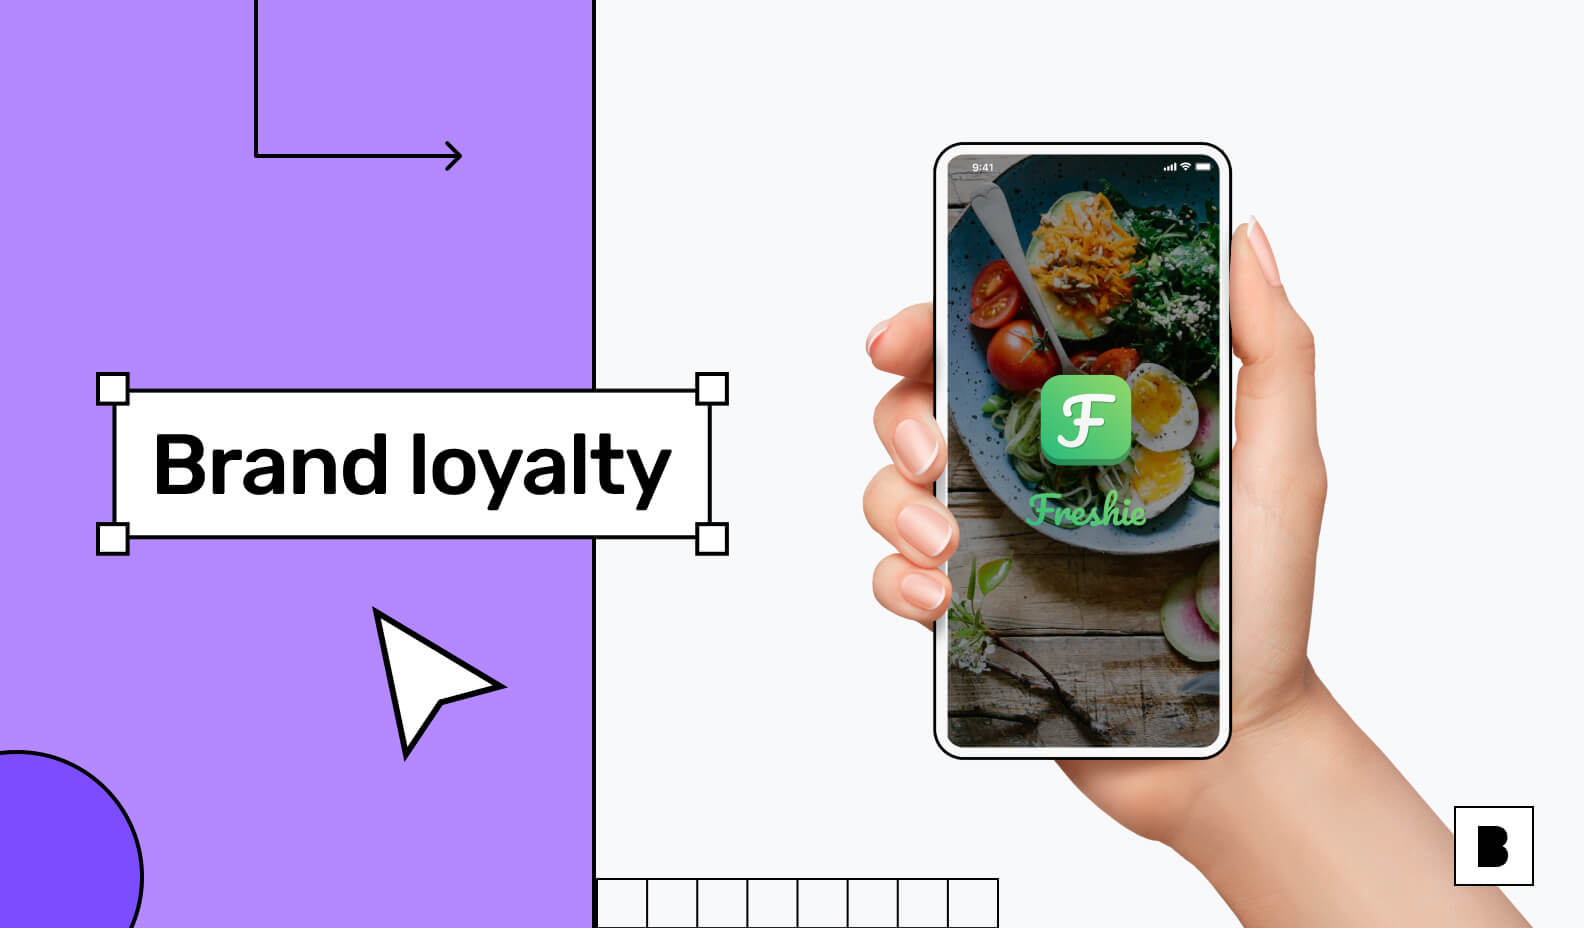 5 must-follow tips for building brand loyalty